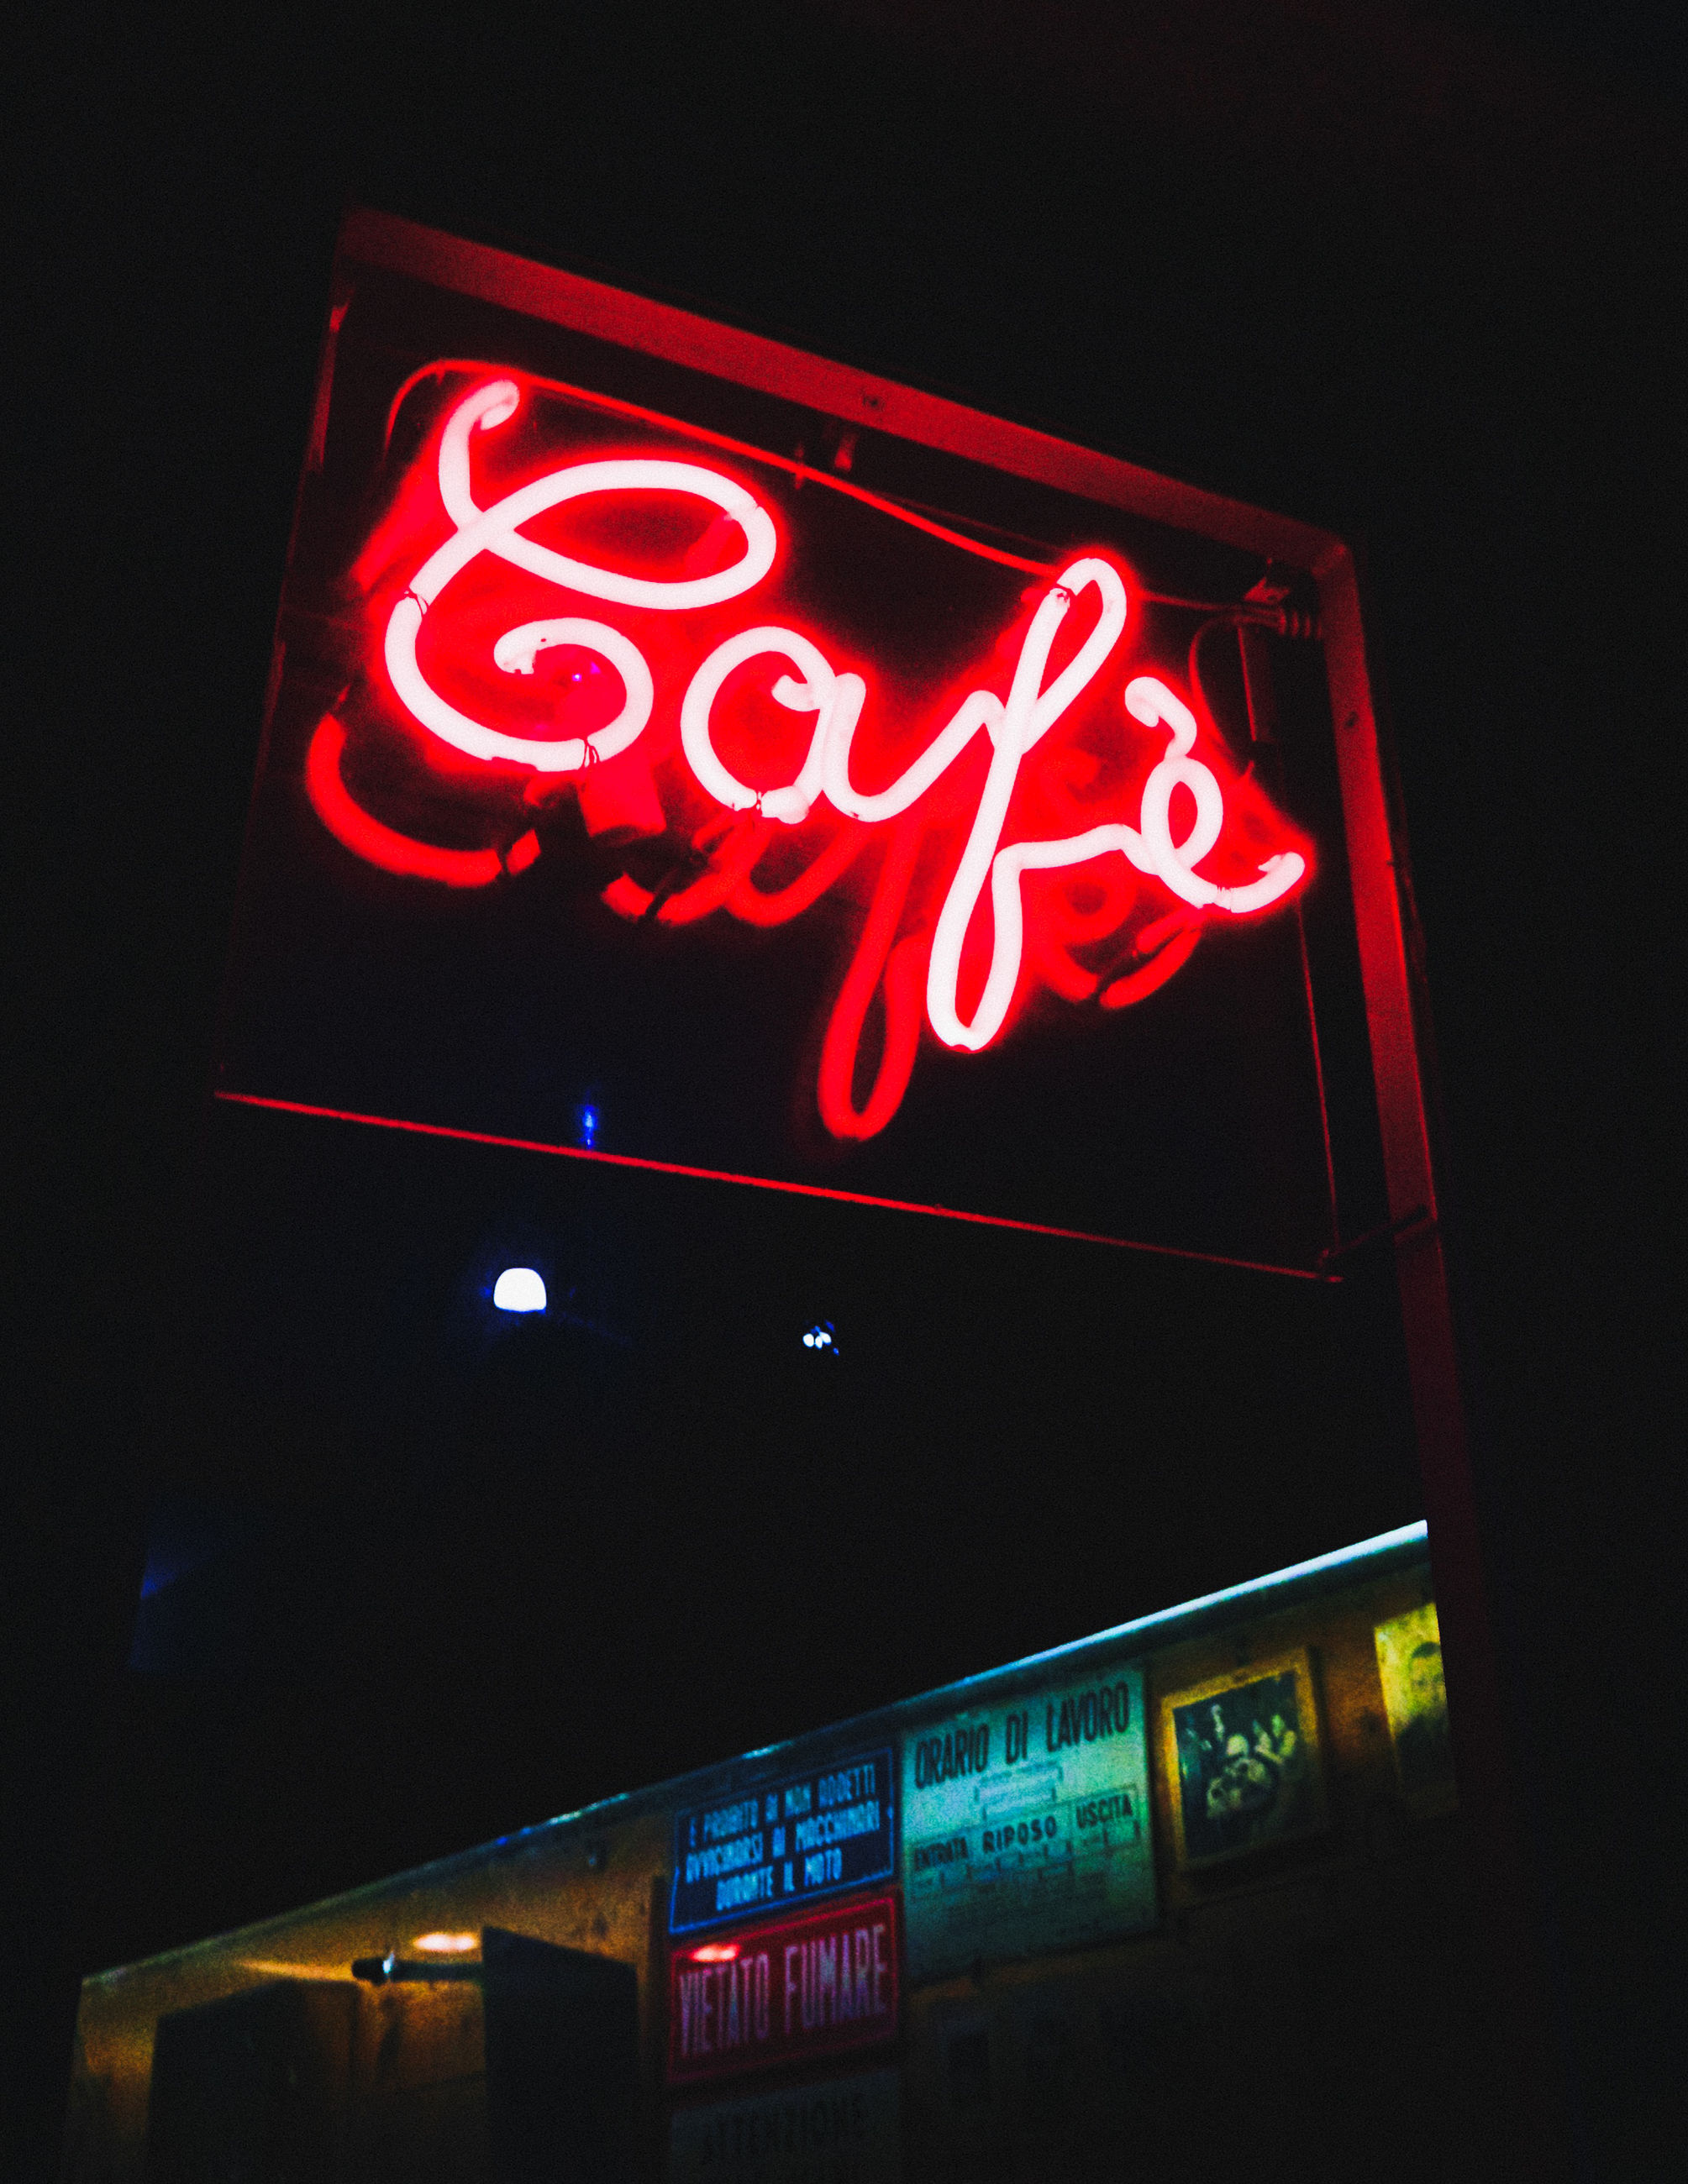 neon, information sign, night, illuminated, red, communication, text, dark, no people, close-up, indoors